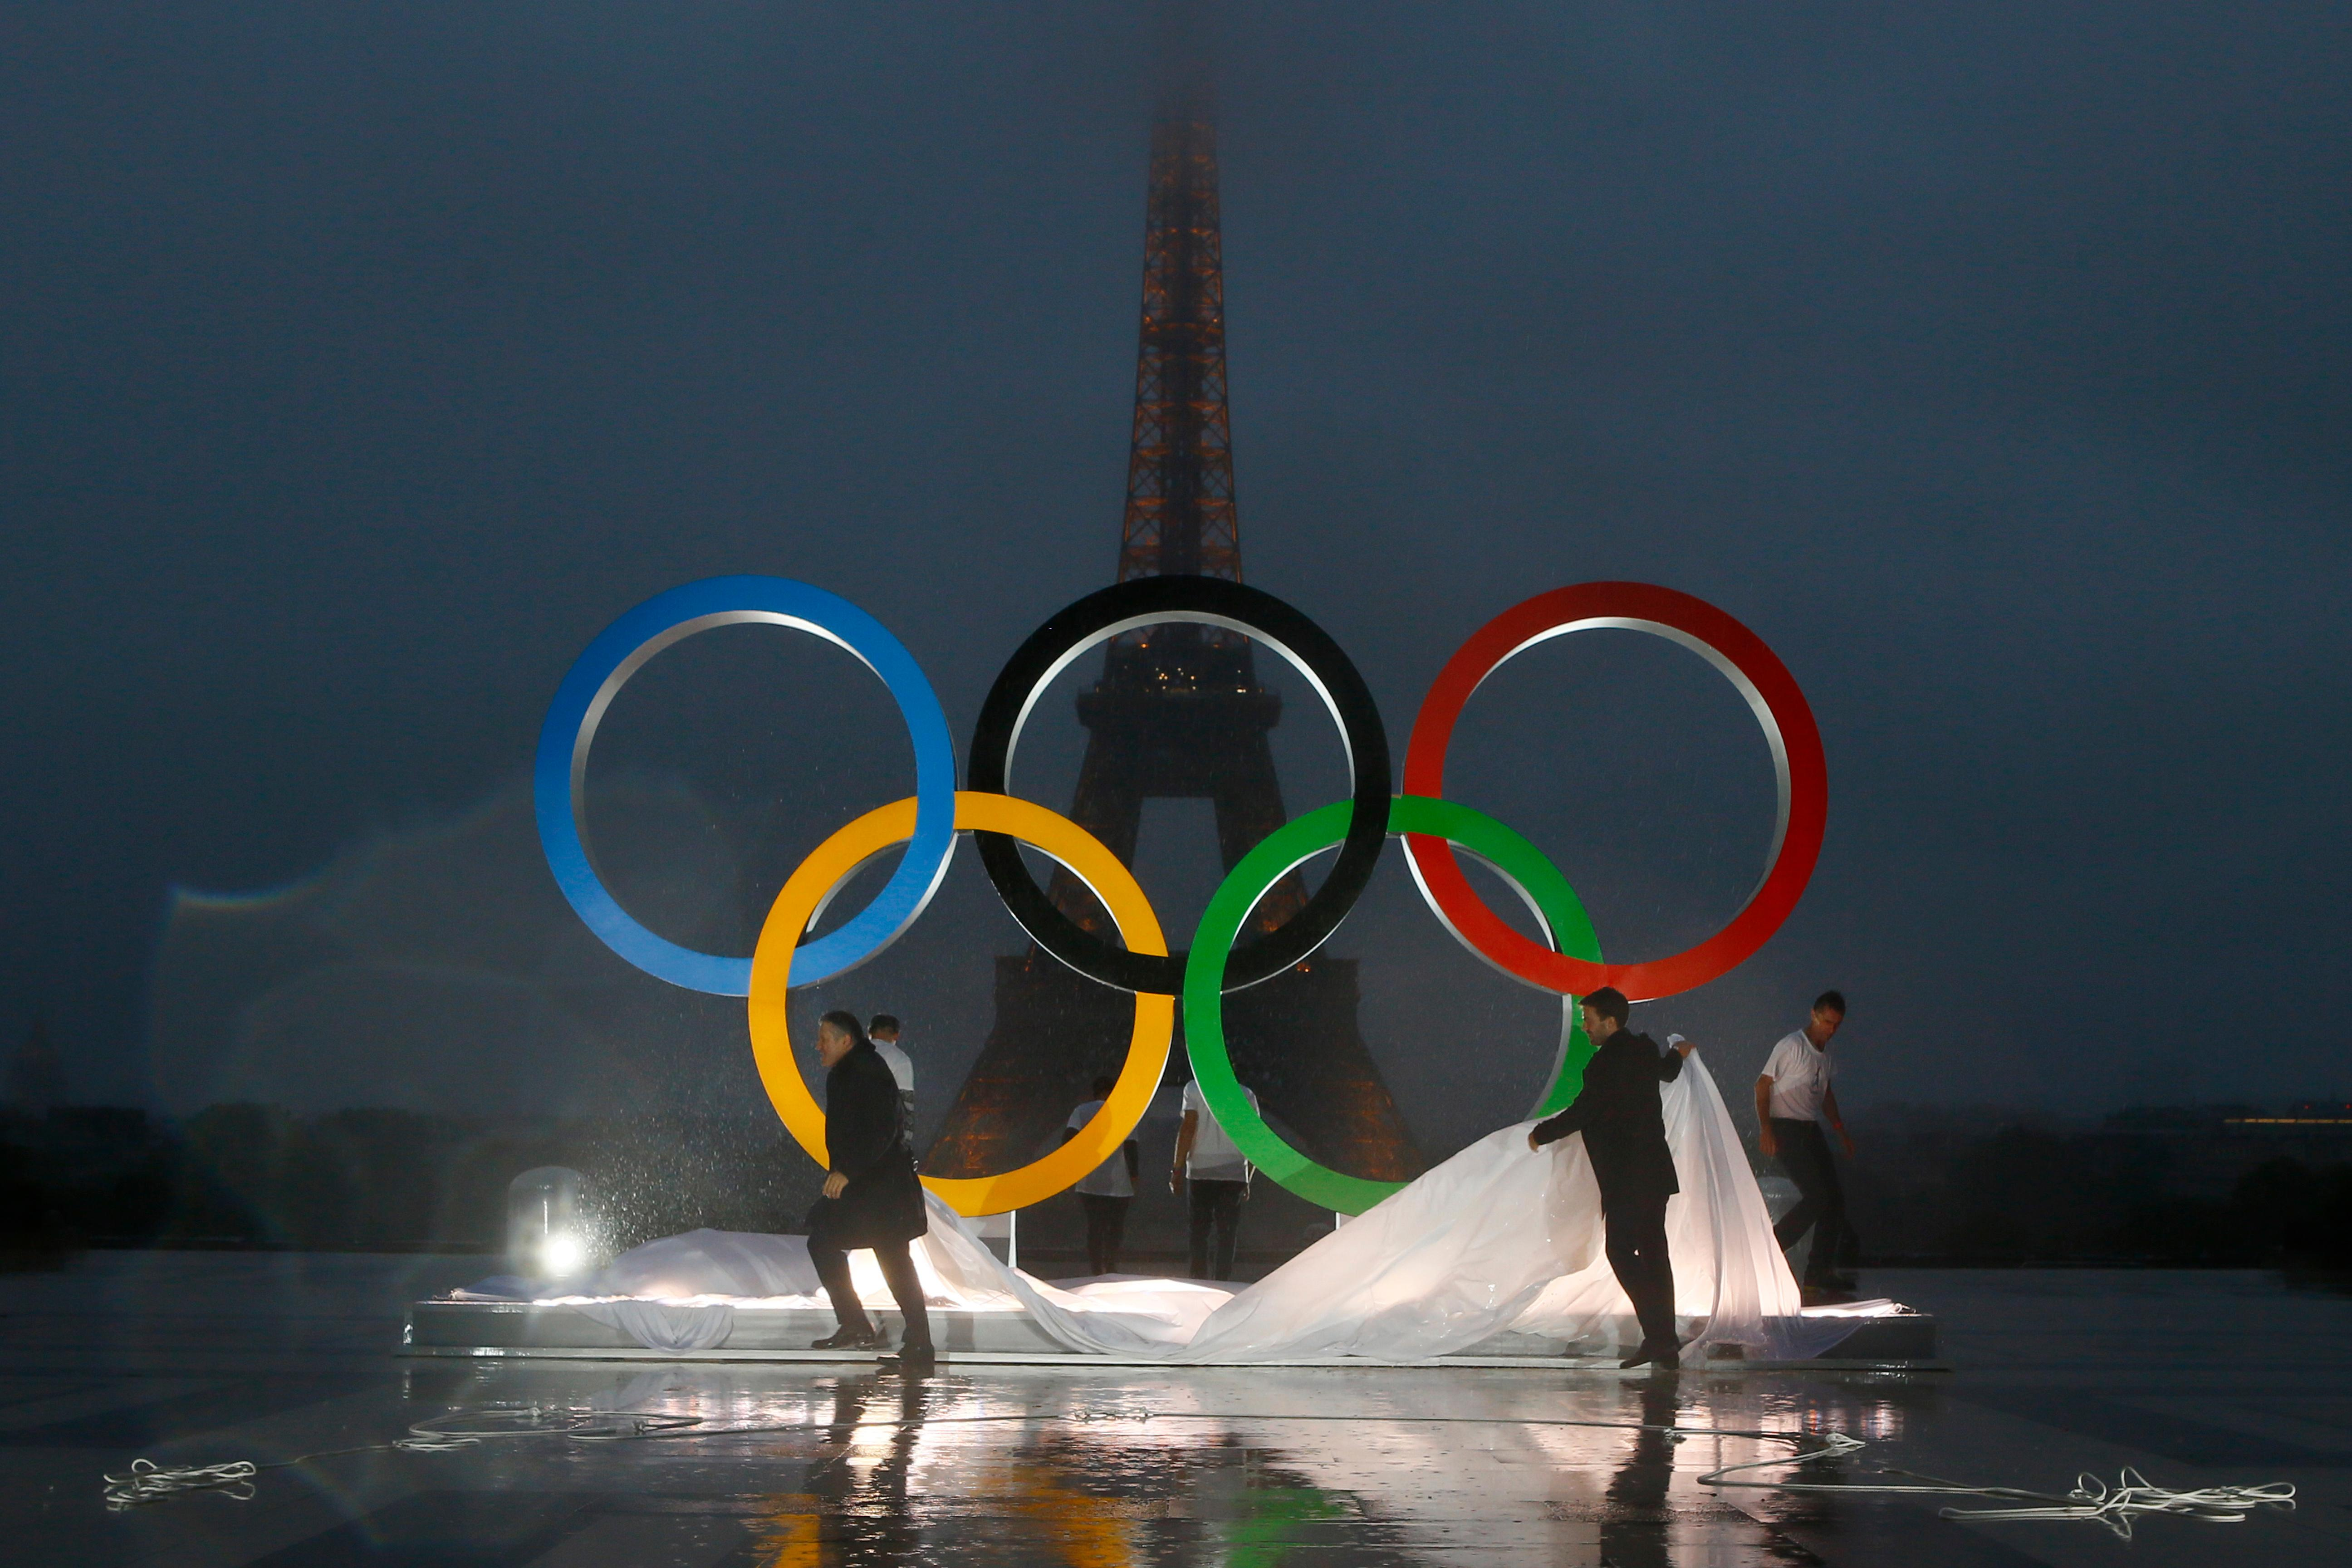 Paris officials unveil a display of the Olympic rings on Trocadero plaza that overlooks the Eiffel Tower, after the vote in Lima, Peru, awarding the 2024 Games to the French capital, in Paris, France, Wednesday, Sept. 13, 2017. Paris will host the 2024 Summer Olympics and Los Angeles will stage the 2028 Games — a pre-determined conclusion that the International Olympic Committee has officially ratified in a history-making vote. (AP Photo/Francois Mori)